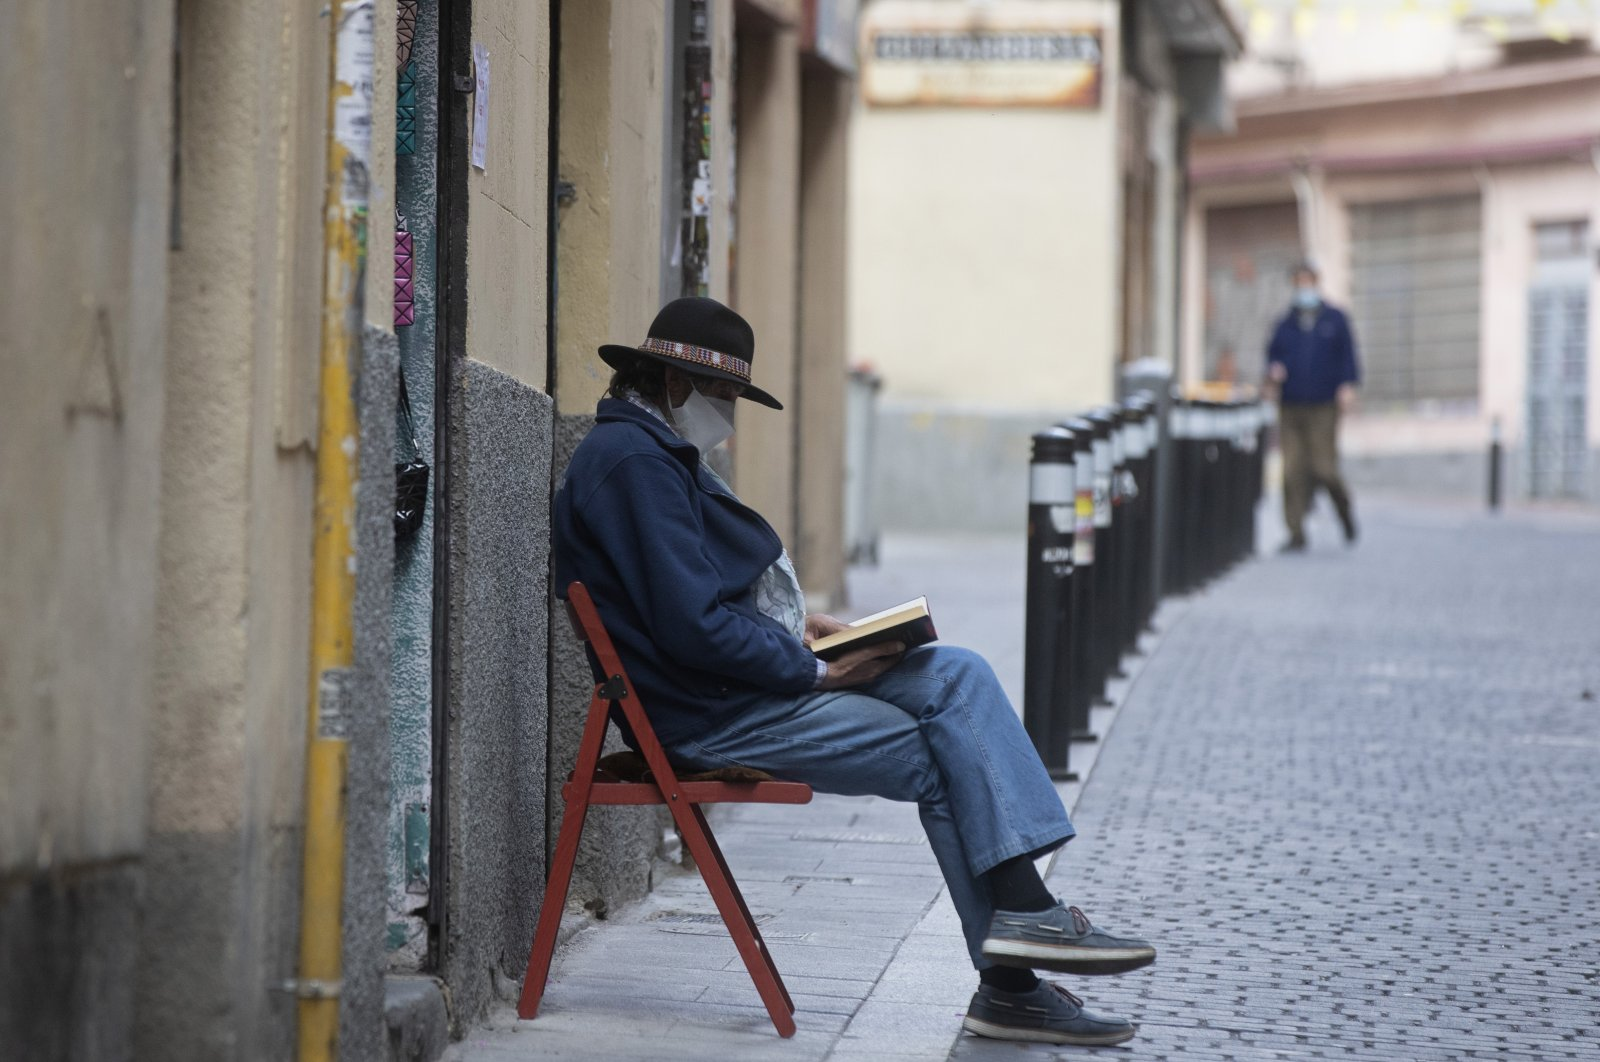 A man wearing a face mask to protect against coronavirus sits and waits for customers outside a small shop while reading a book in Madrid, Spain, Saturday, May 16, 2020.  (AP Photo)